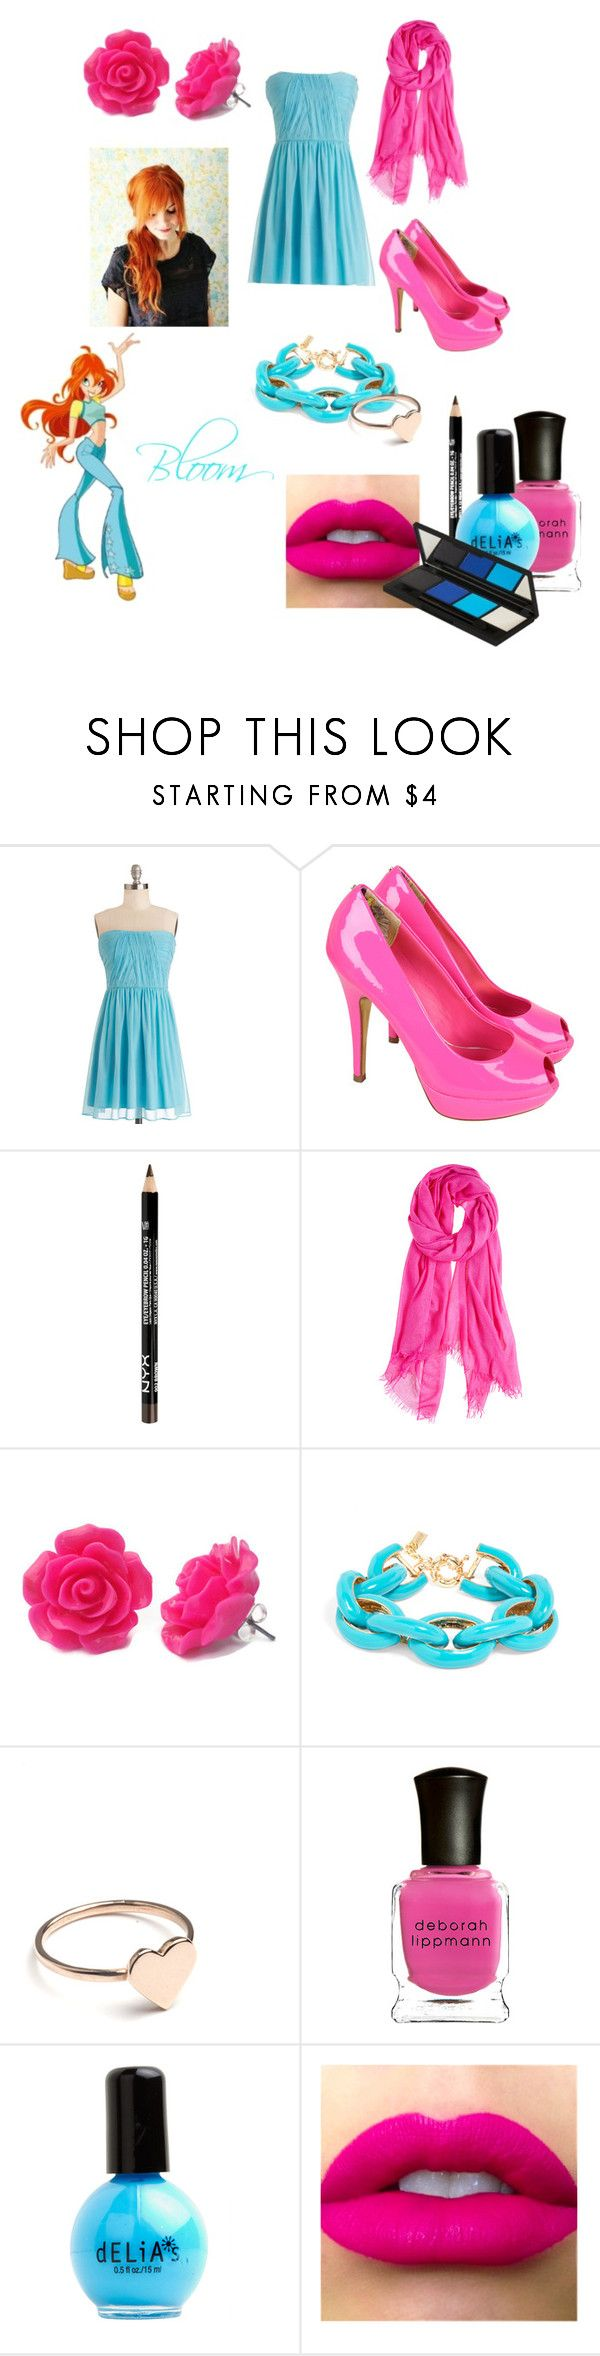 """""""Bloom-Winx Club"""" by fashionlover1256 ❤ liked on Polyvore featuring Ted Baker, Calypso Private Label, Holly Ryan, Deborah Lippmann and Topshop"""